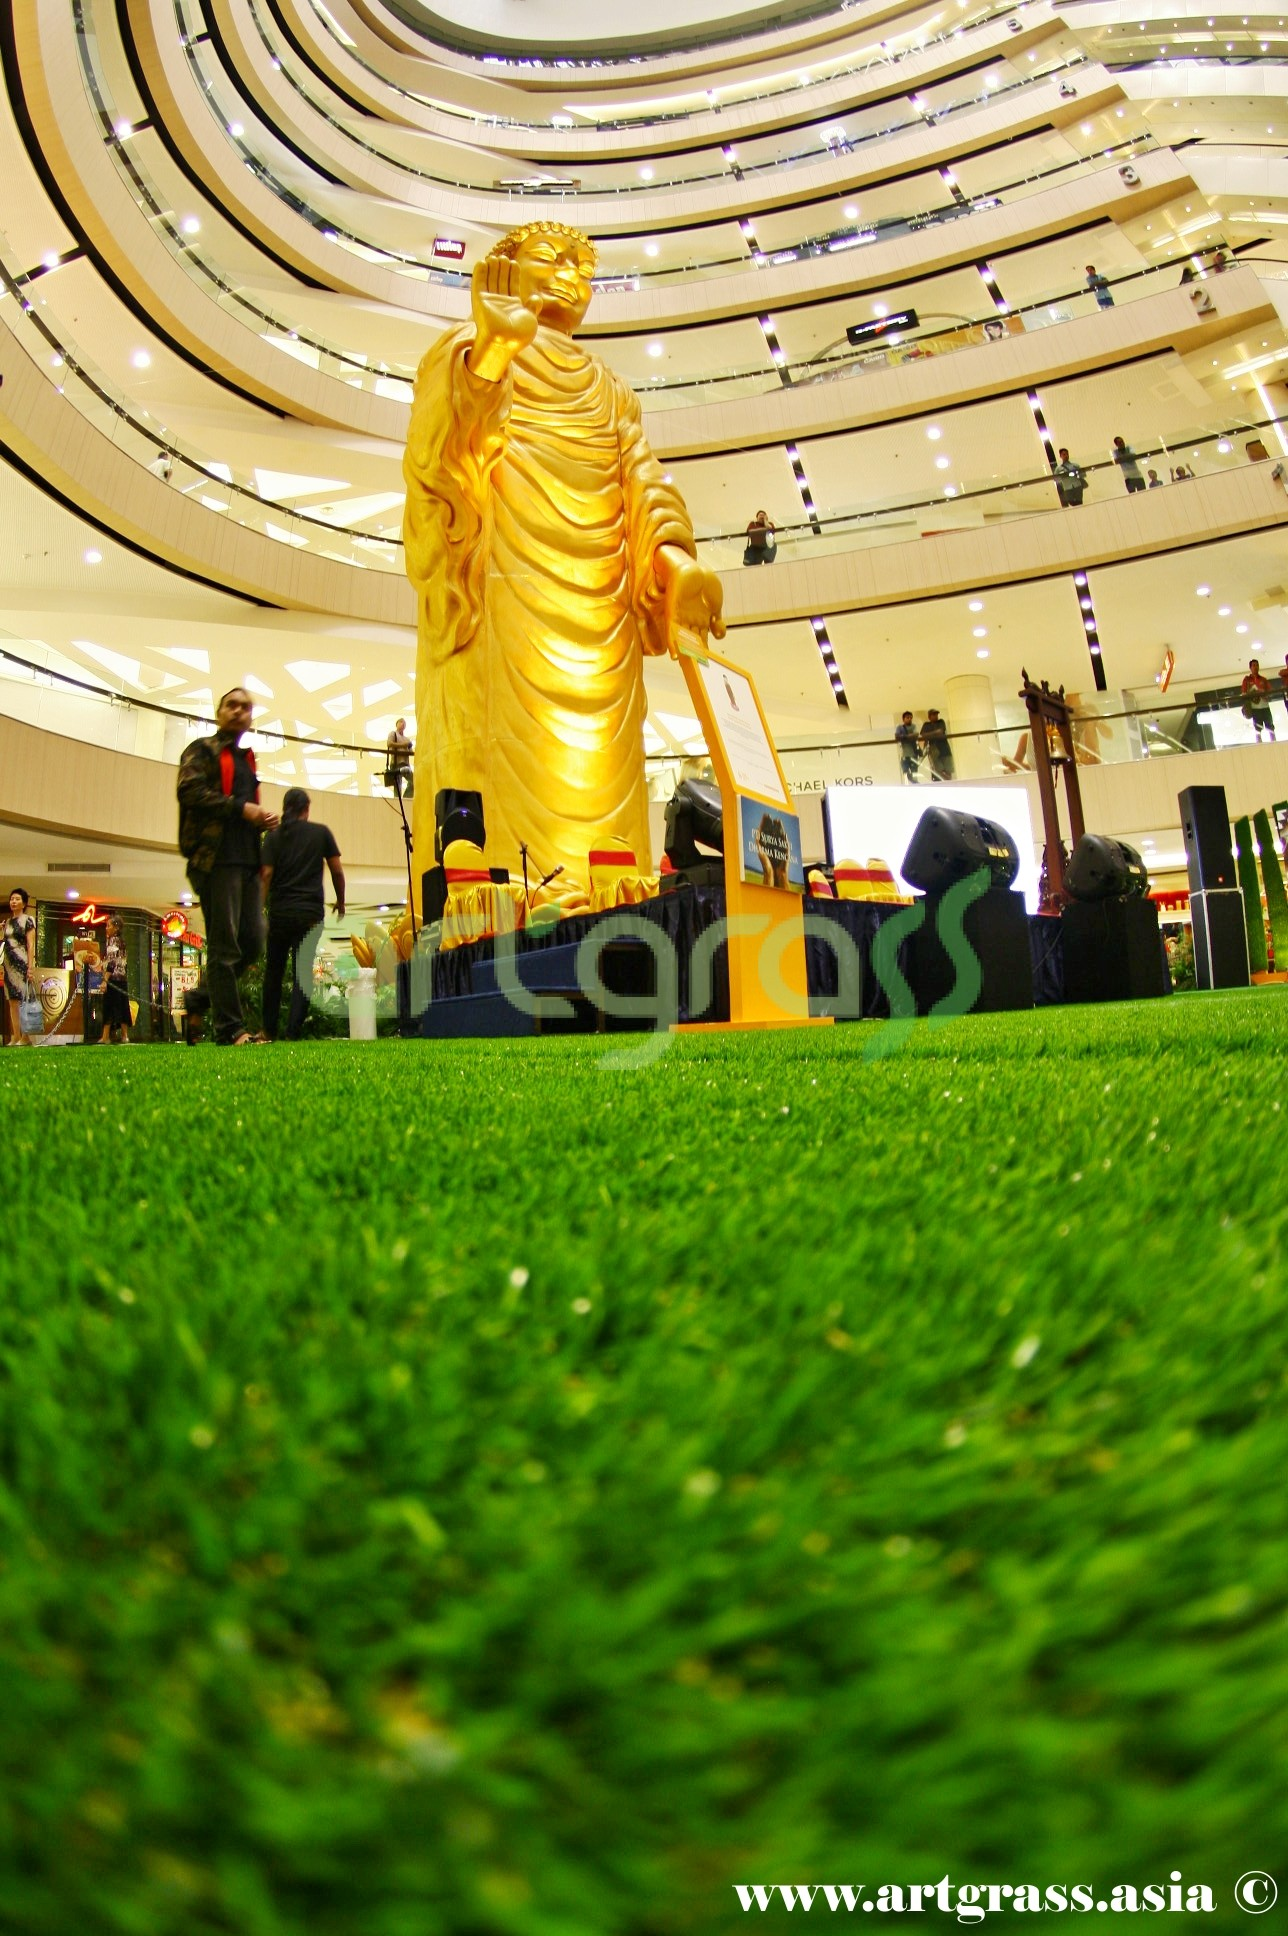 ArtGrass-At-Vesak-Festival-2015-Main-Atrium-Tunjungan-Plaza-28Mei-2015-Bottom-Giant-Buddha